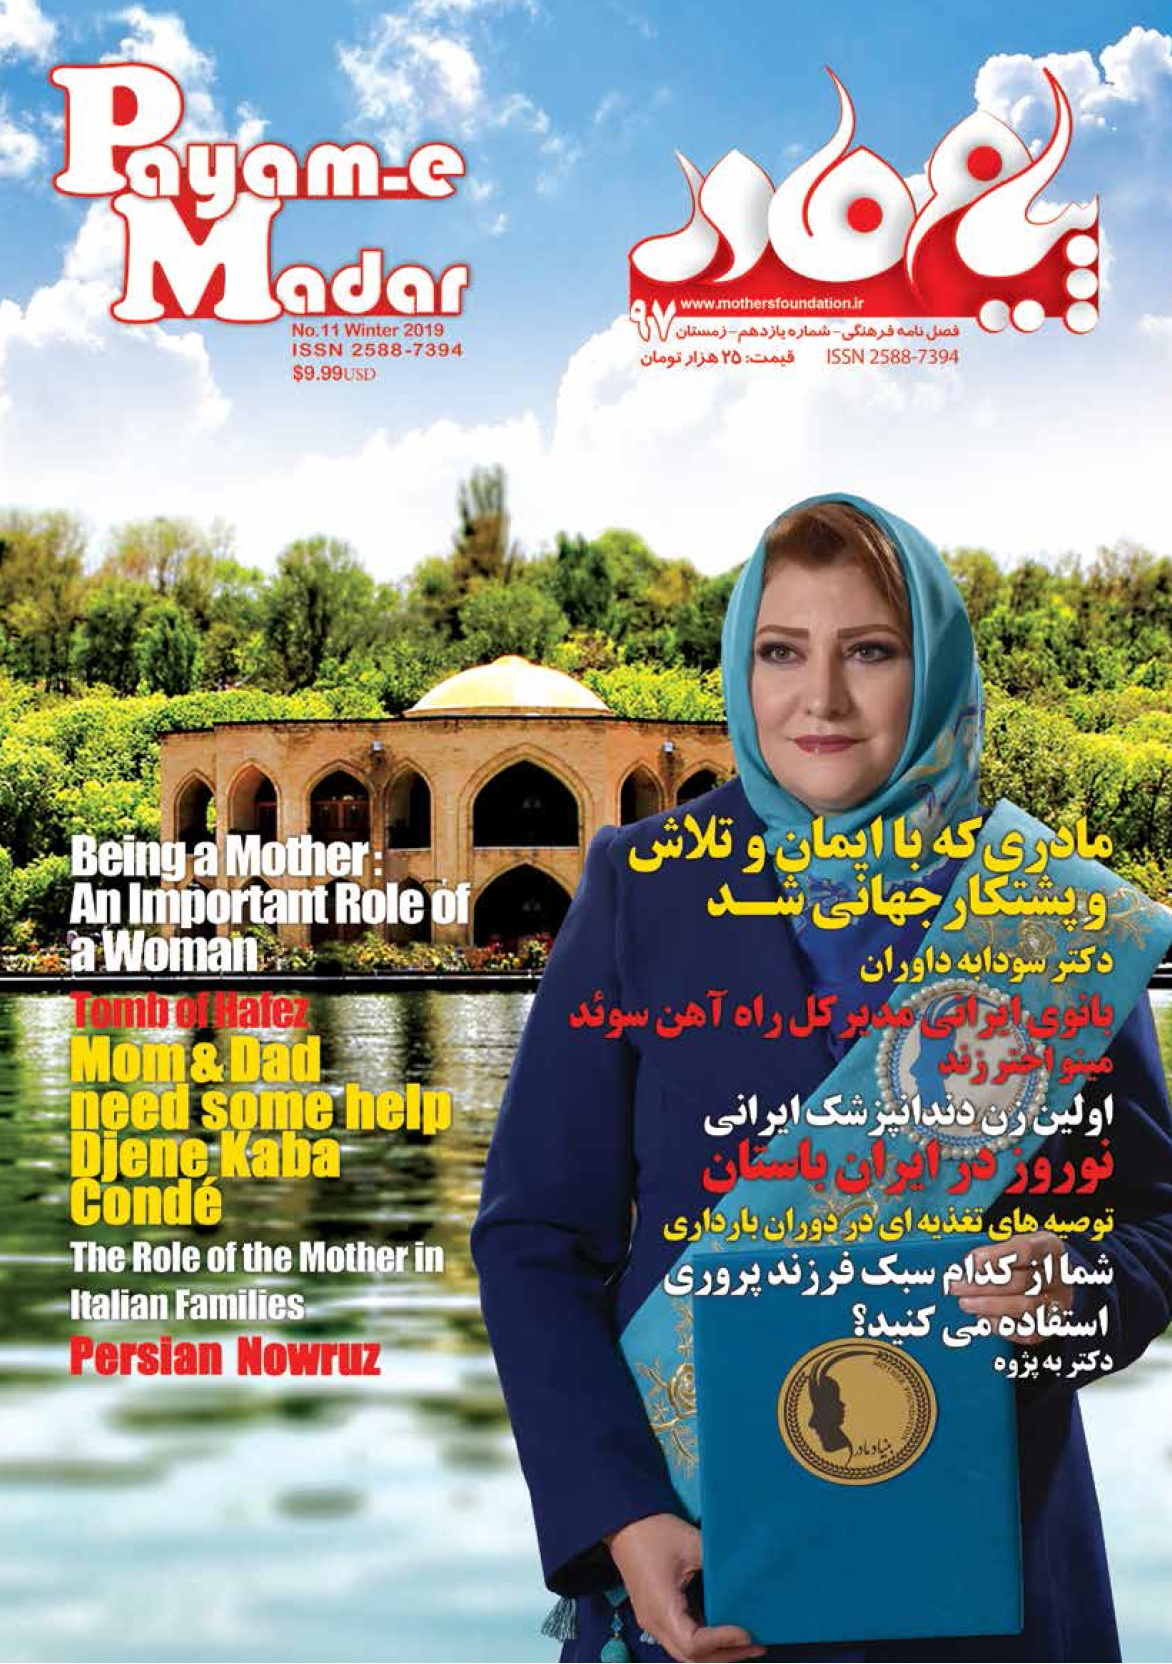 Payam-e Madar Magazine No.11